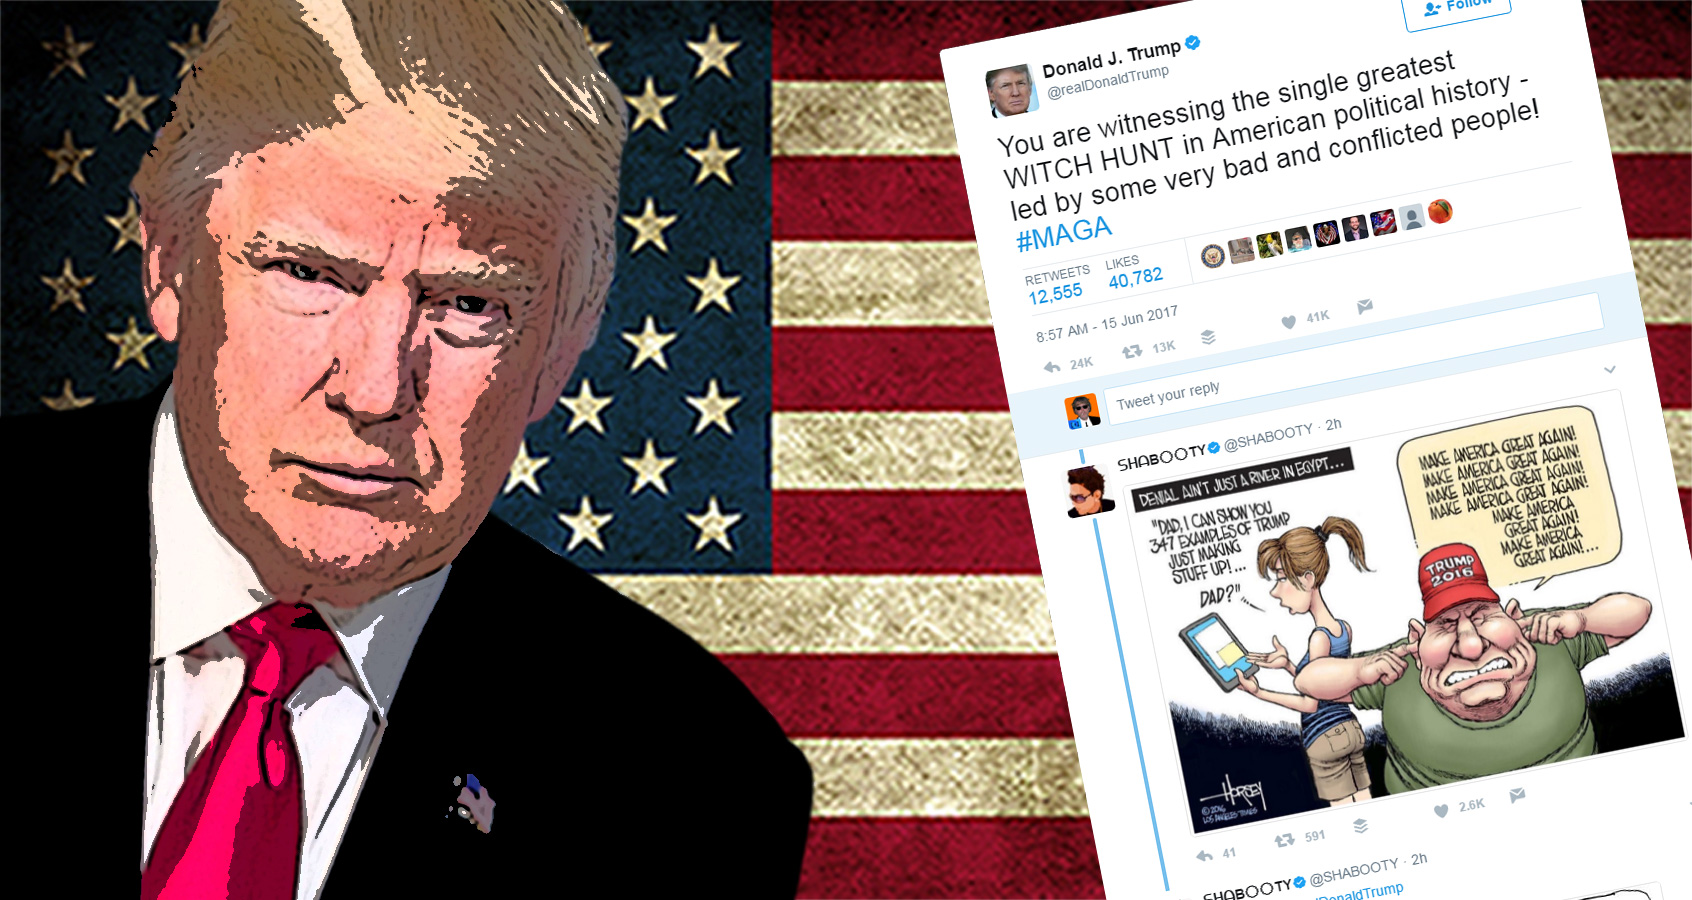 Trump Mercilessly Mocked After He Embarrasses Himself Again With Early Morning Twitter Tantrum